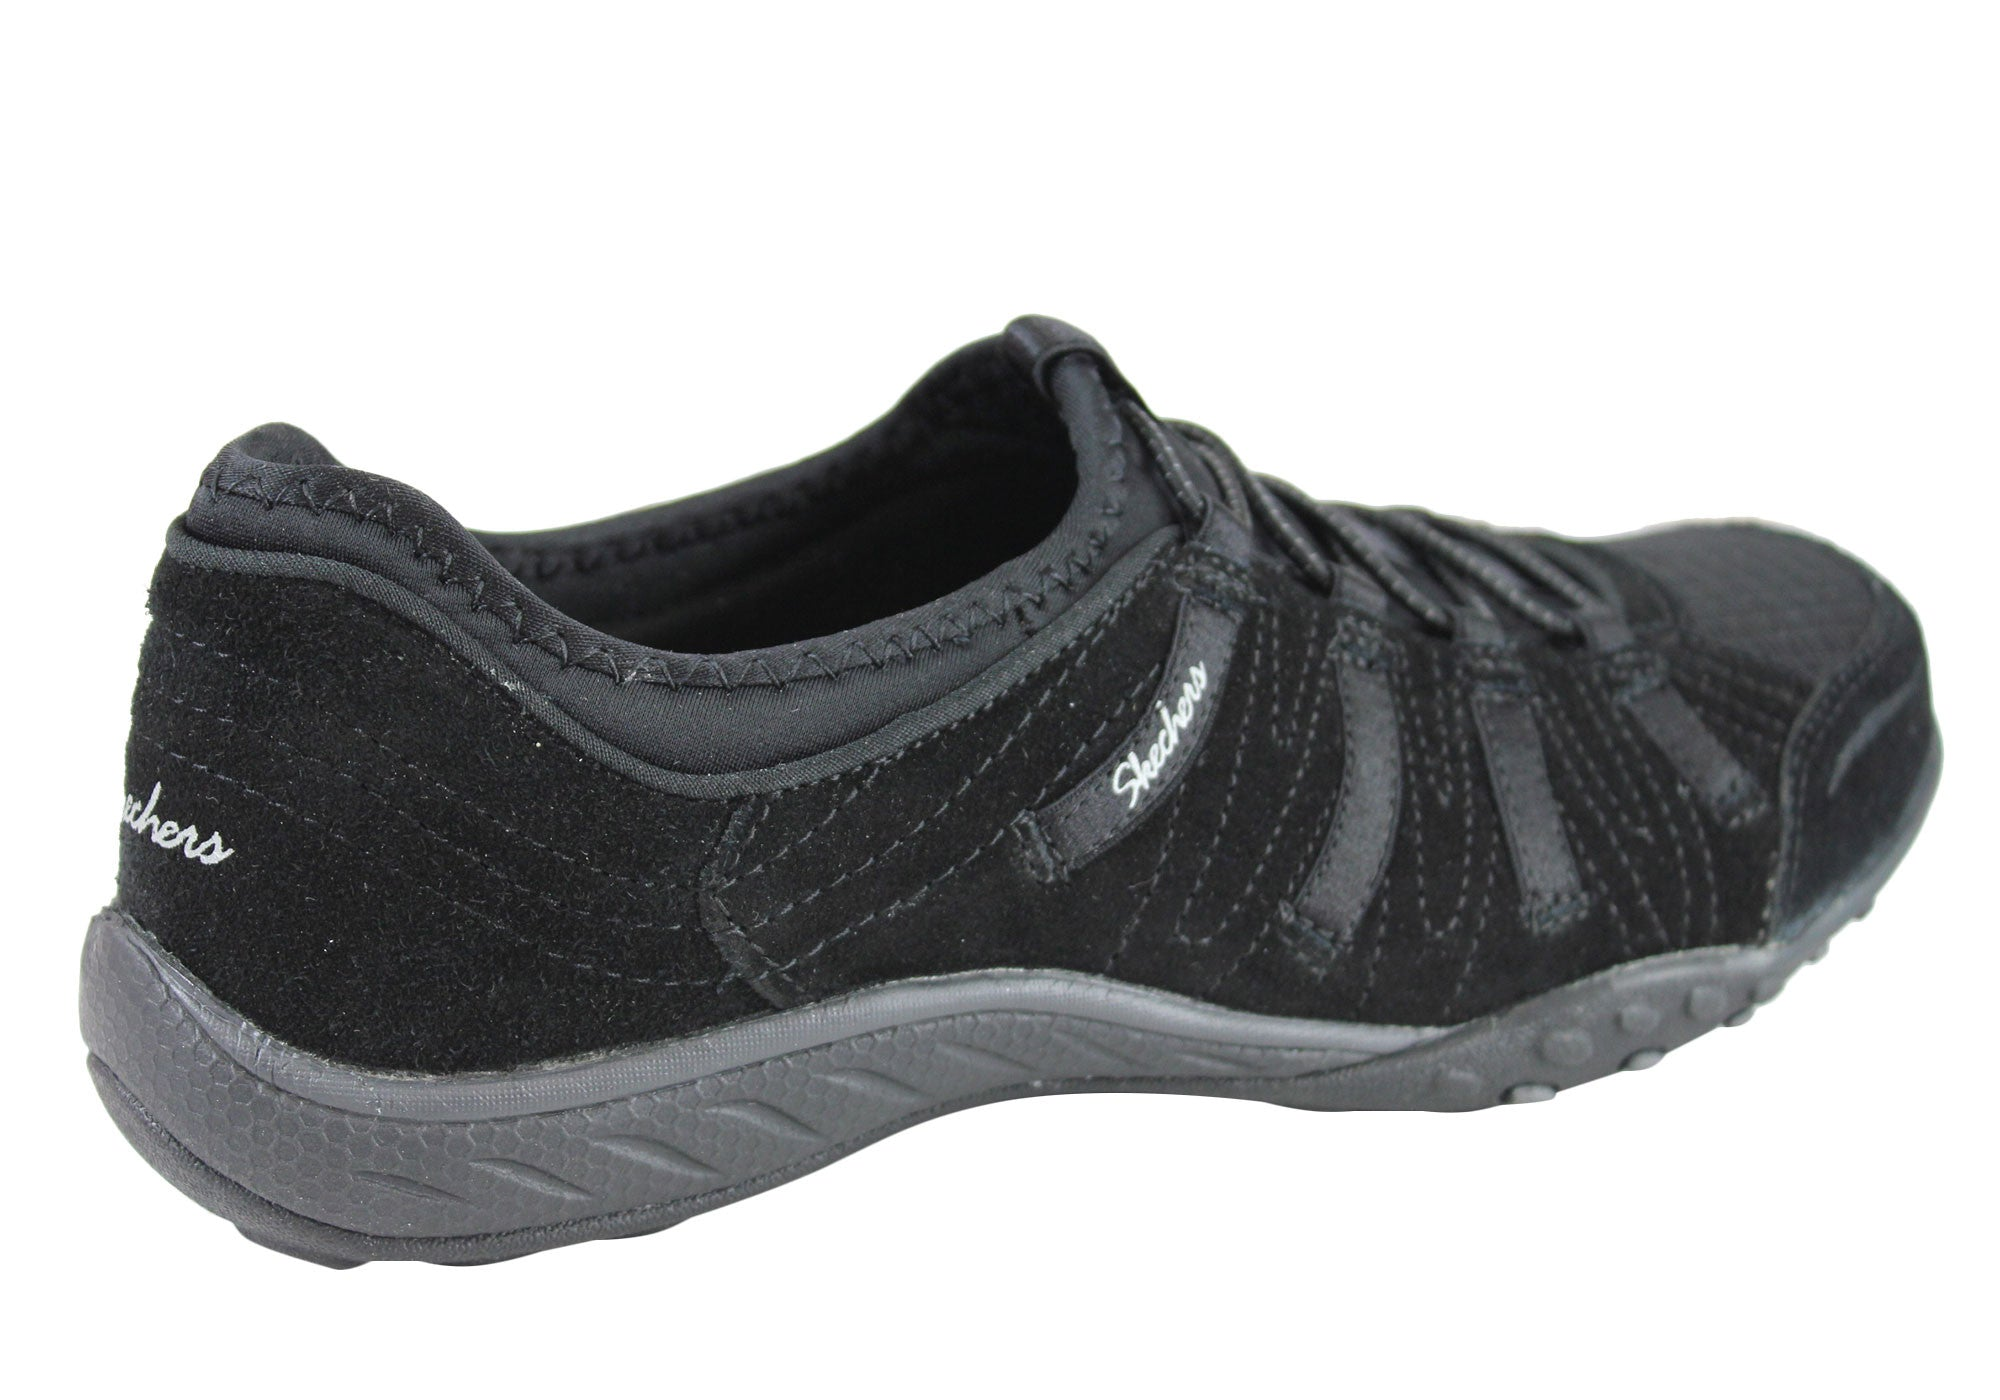 Skechers Breathe Easy Big Bucks Womens Slipon Shoes